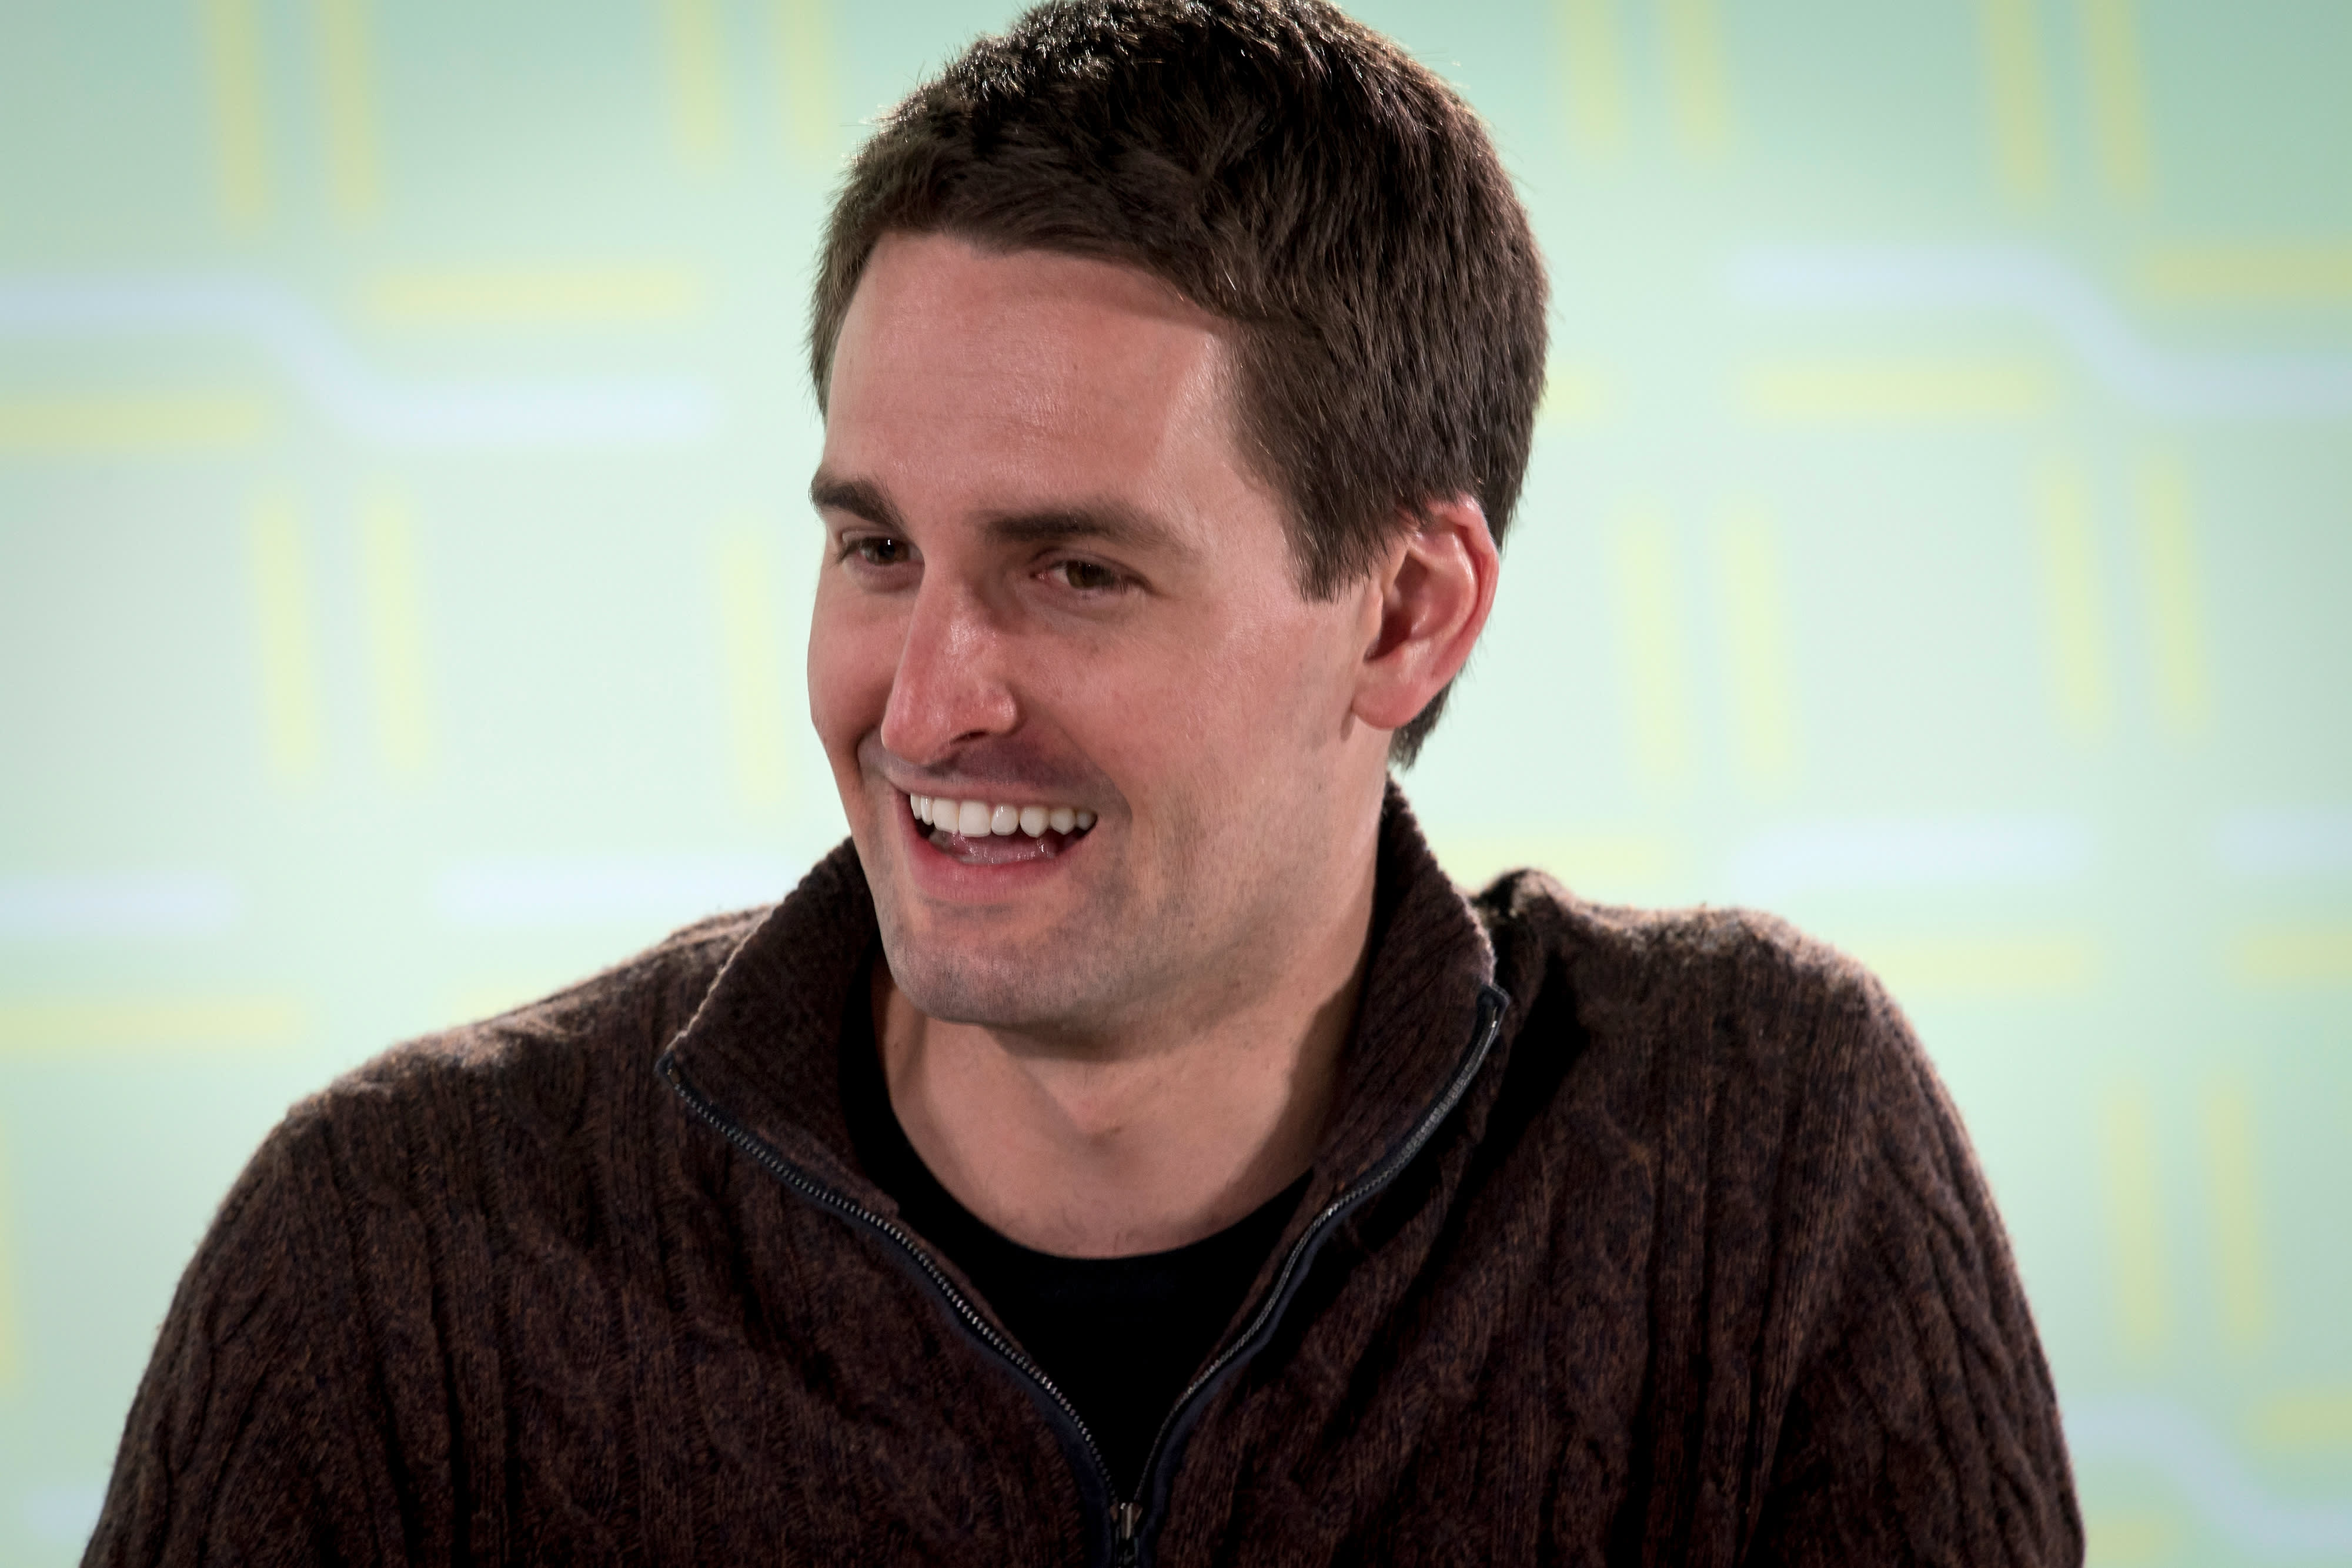 Snapchat fact-checks political ads, unlike Facebook, says CEO Evan Speigel